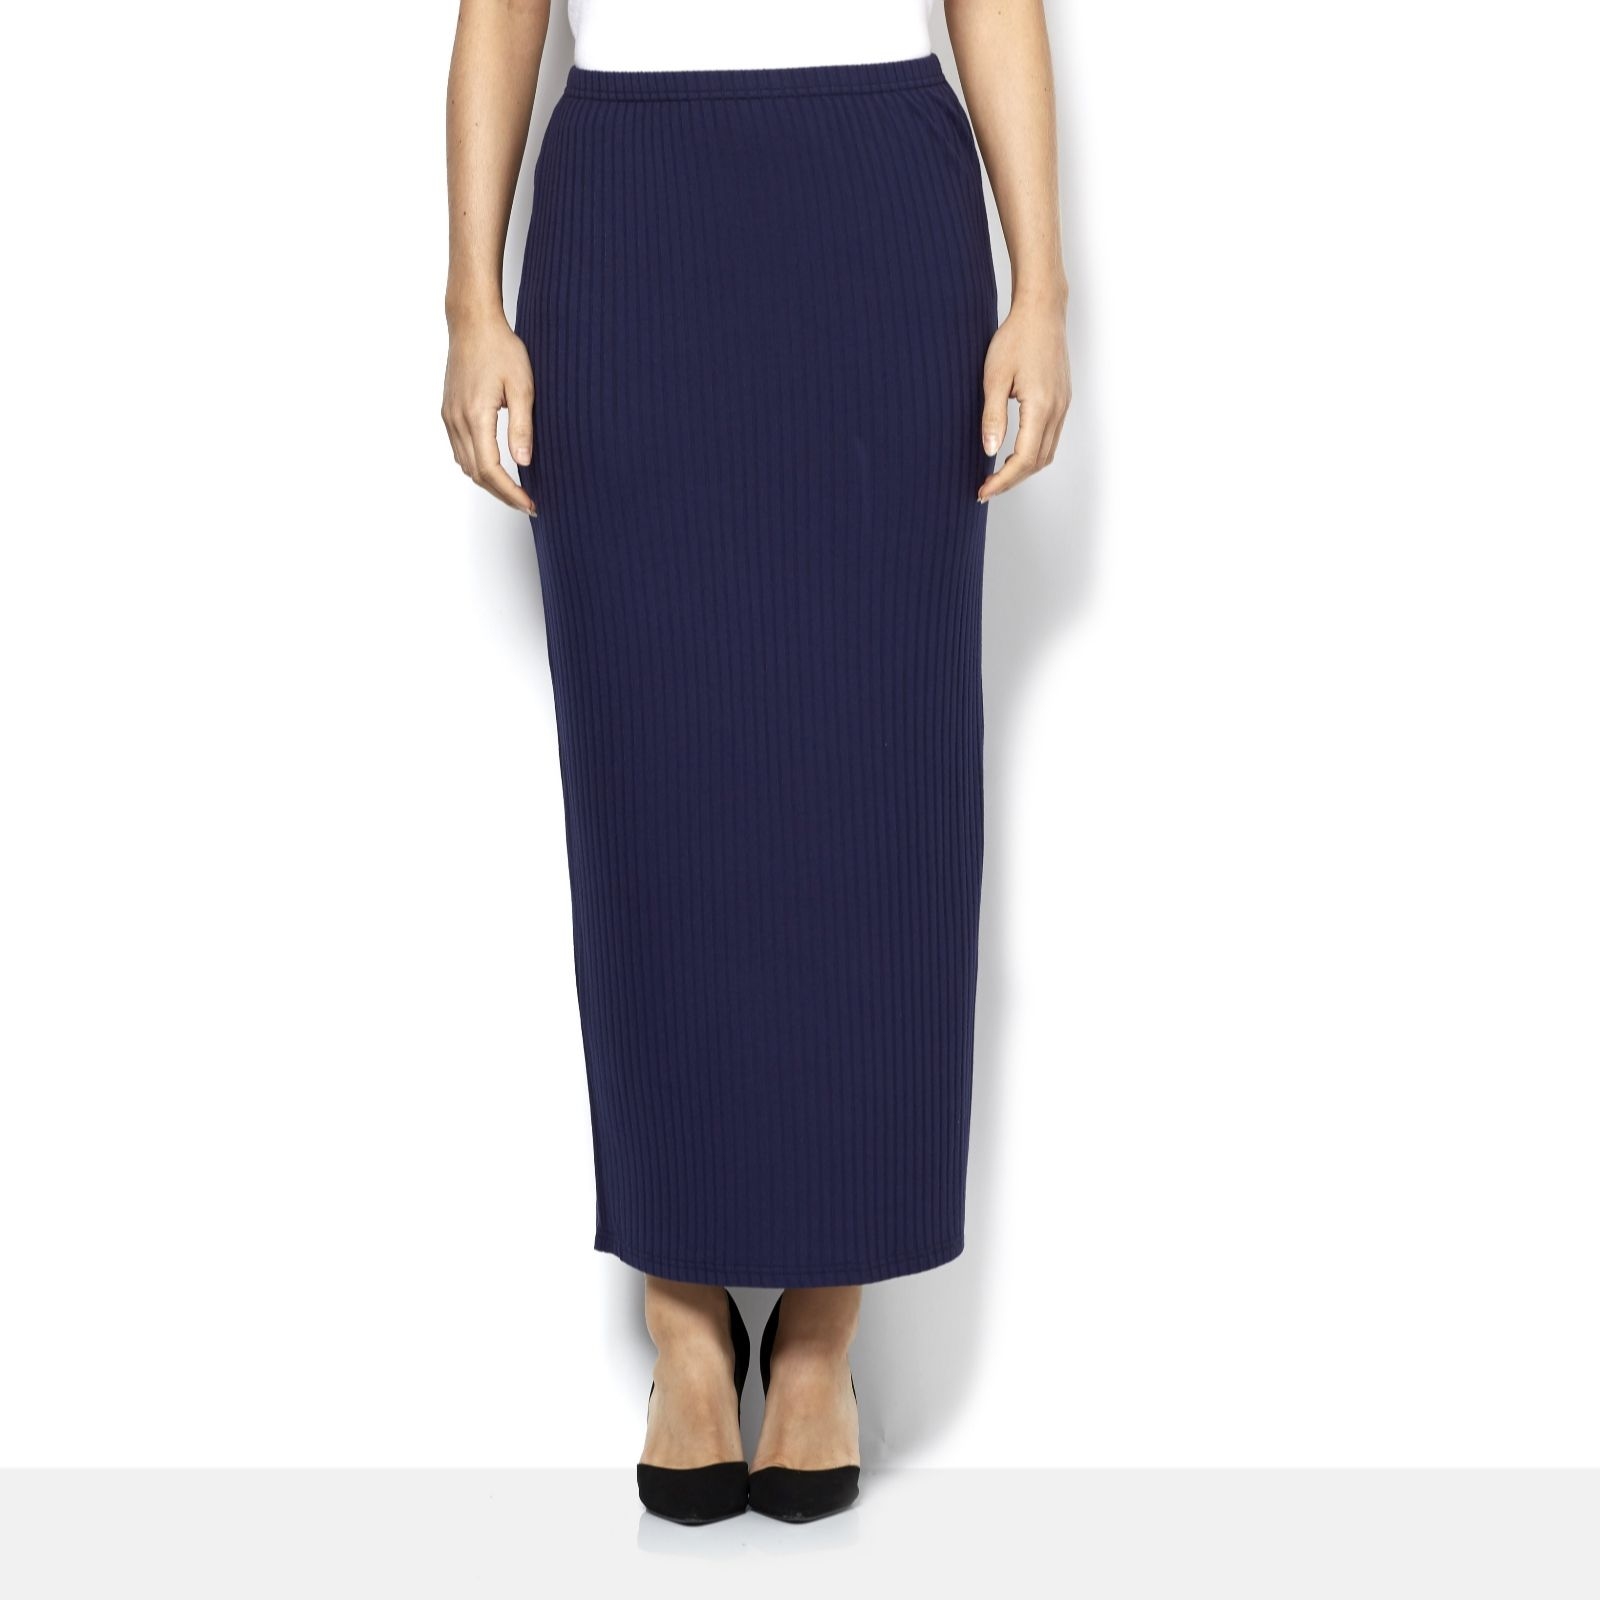 121aa9f29c Join Clothes Rib Jersey Maxi Skirt - Page 1 - QVC UK